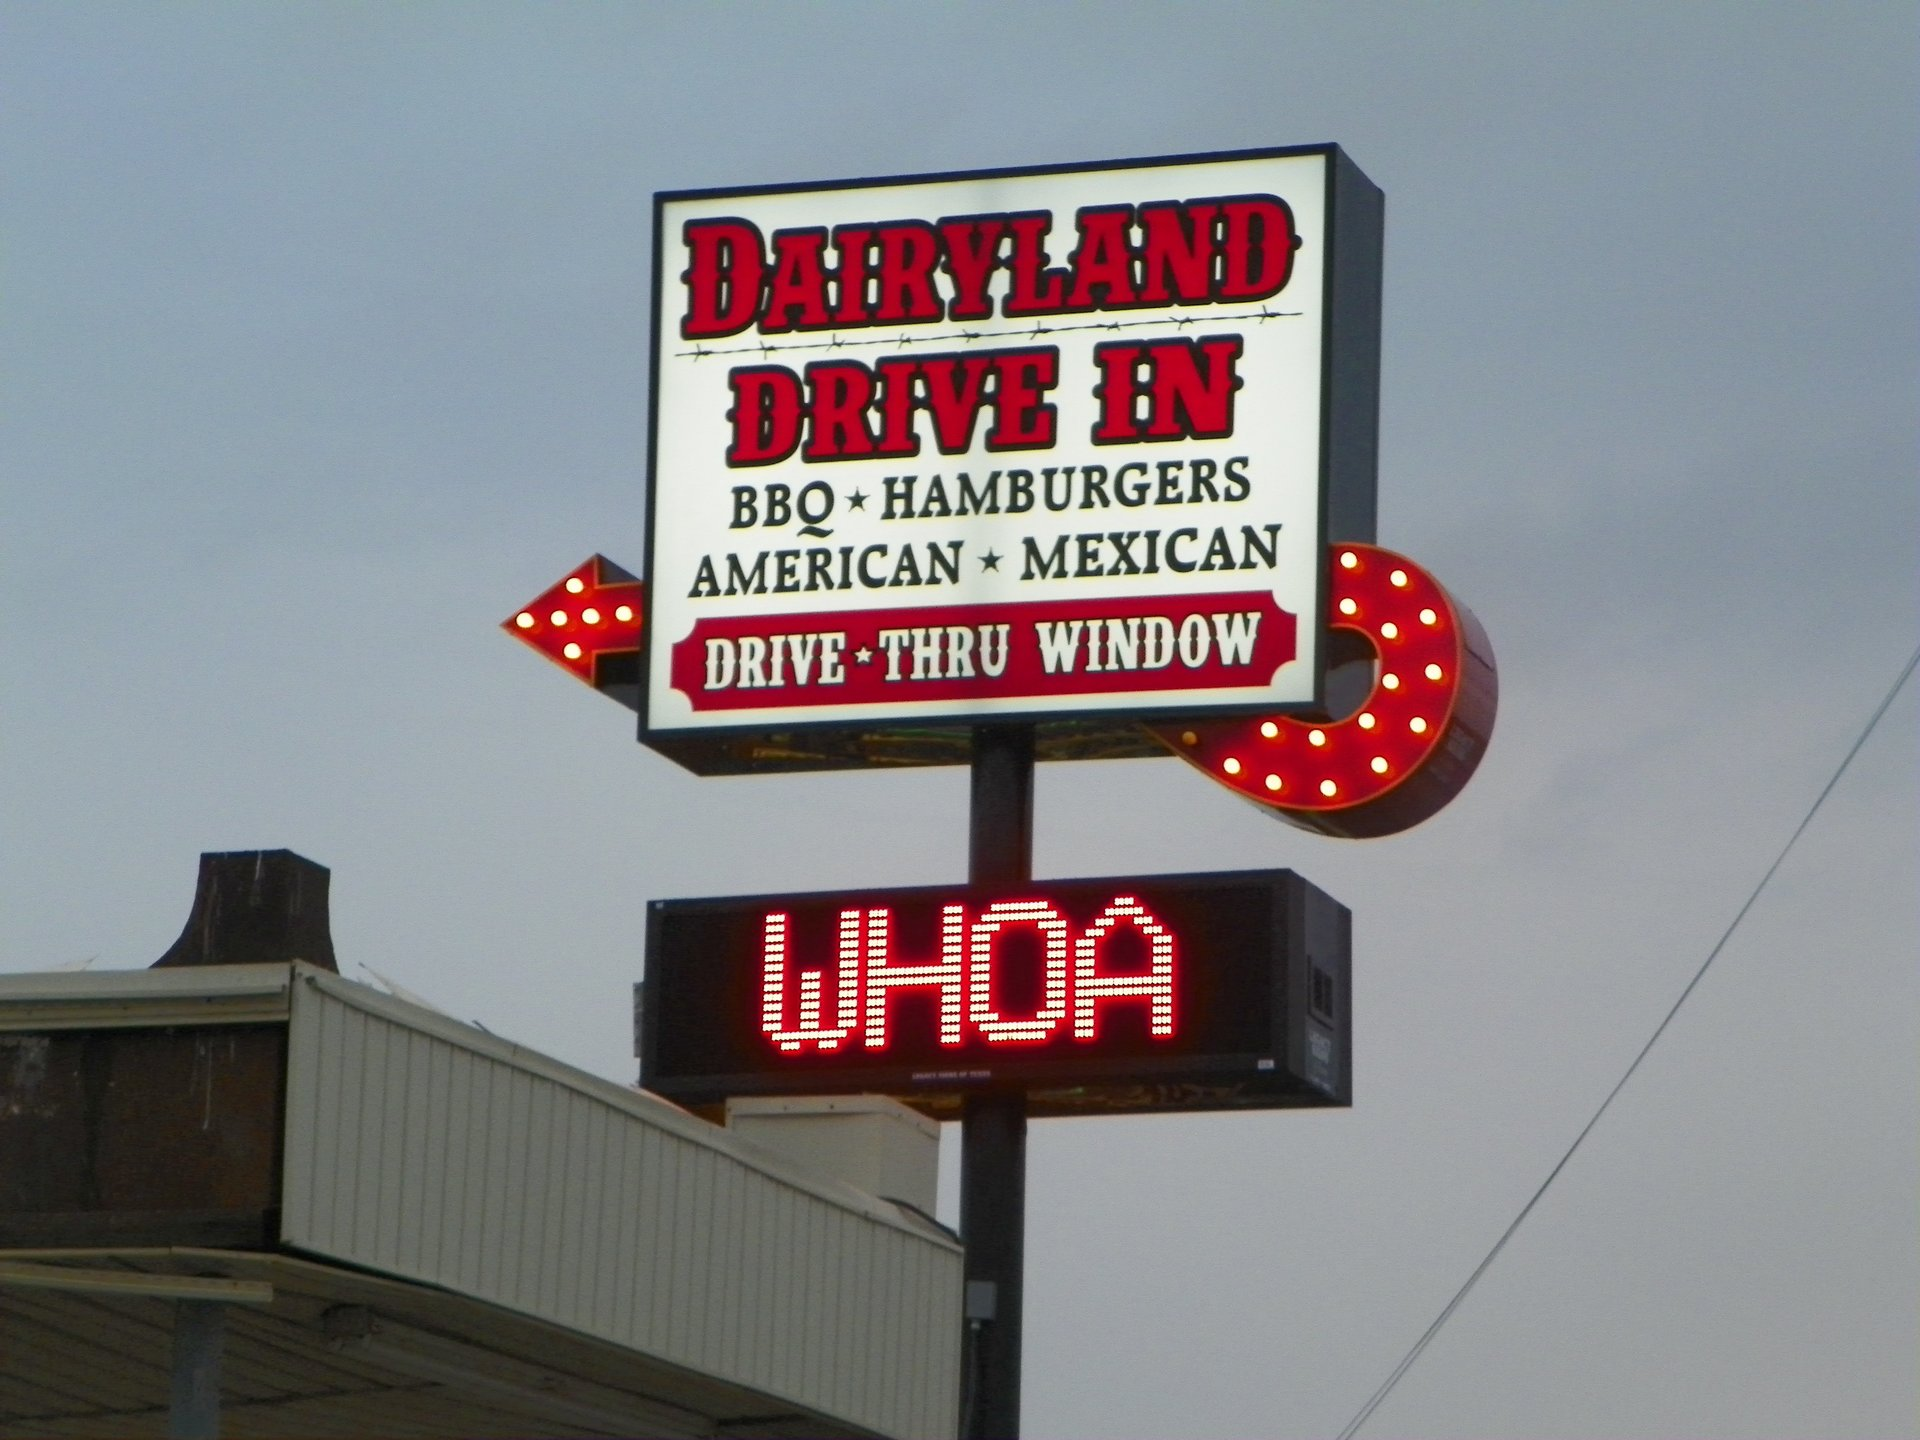 dairyland drive in sign